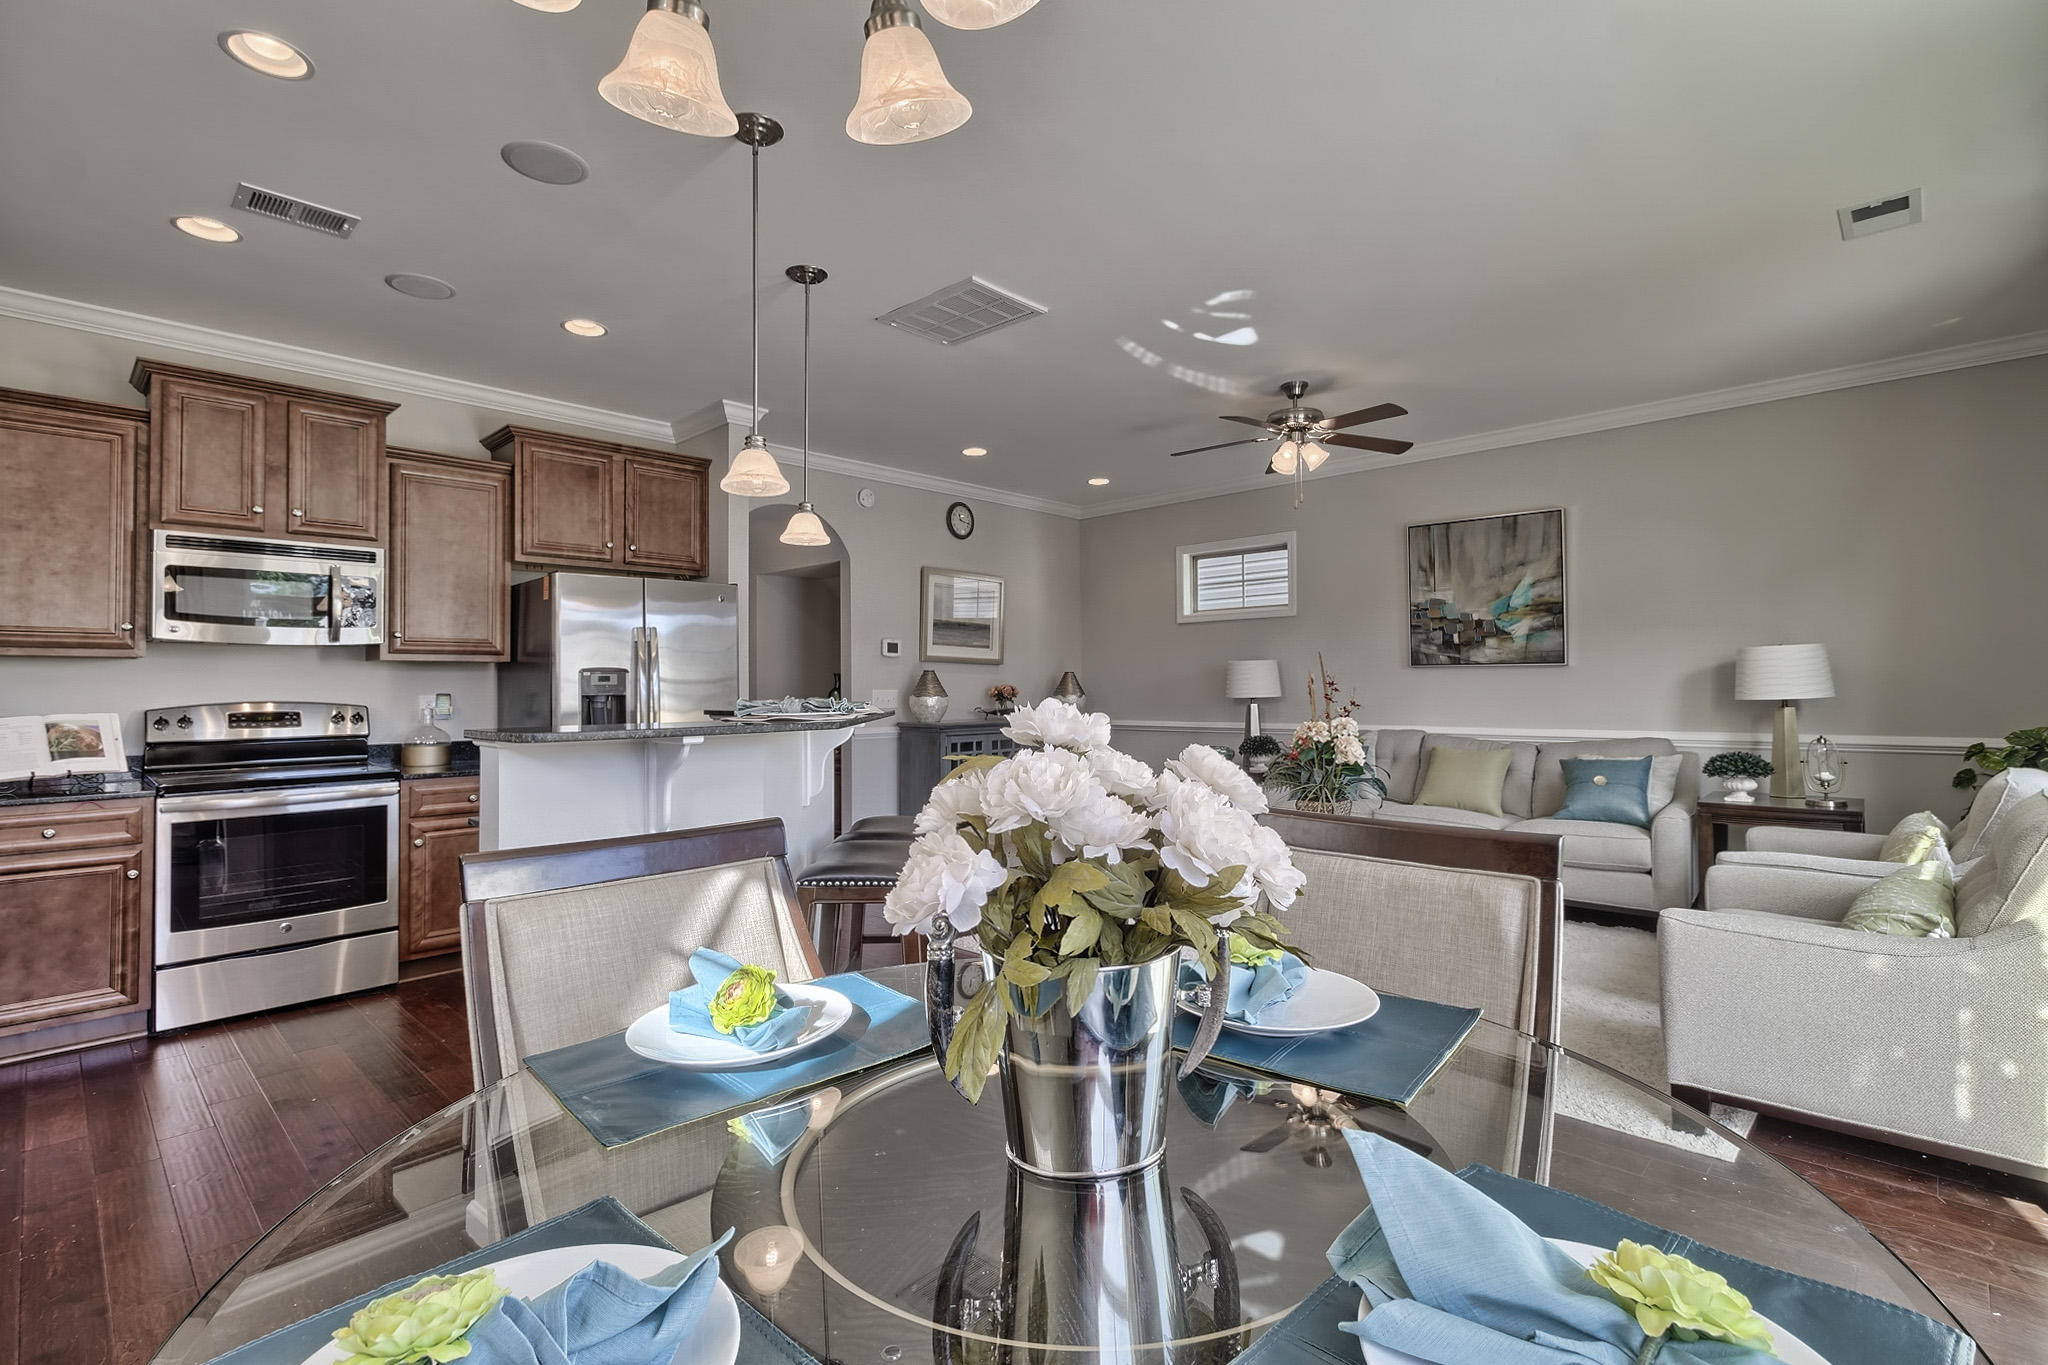 Orchard Park by Great Southern Homes New Homes for Sale - Columbia, SC |  Trulia